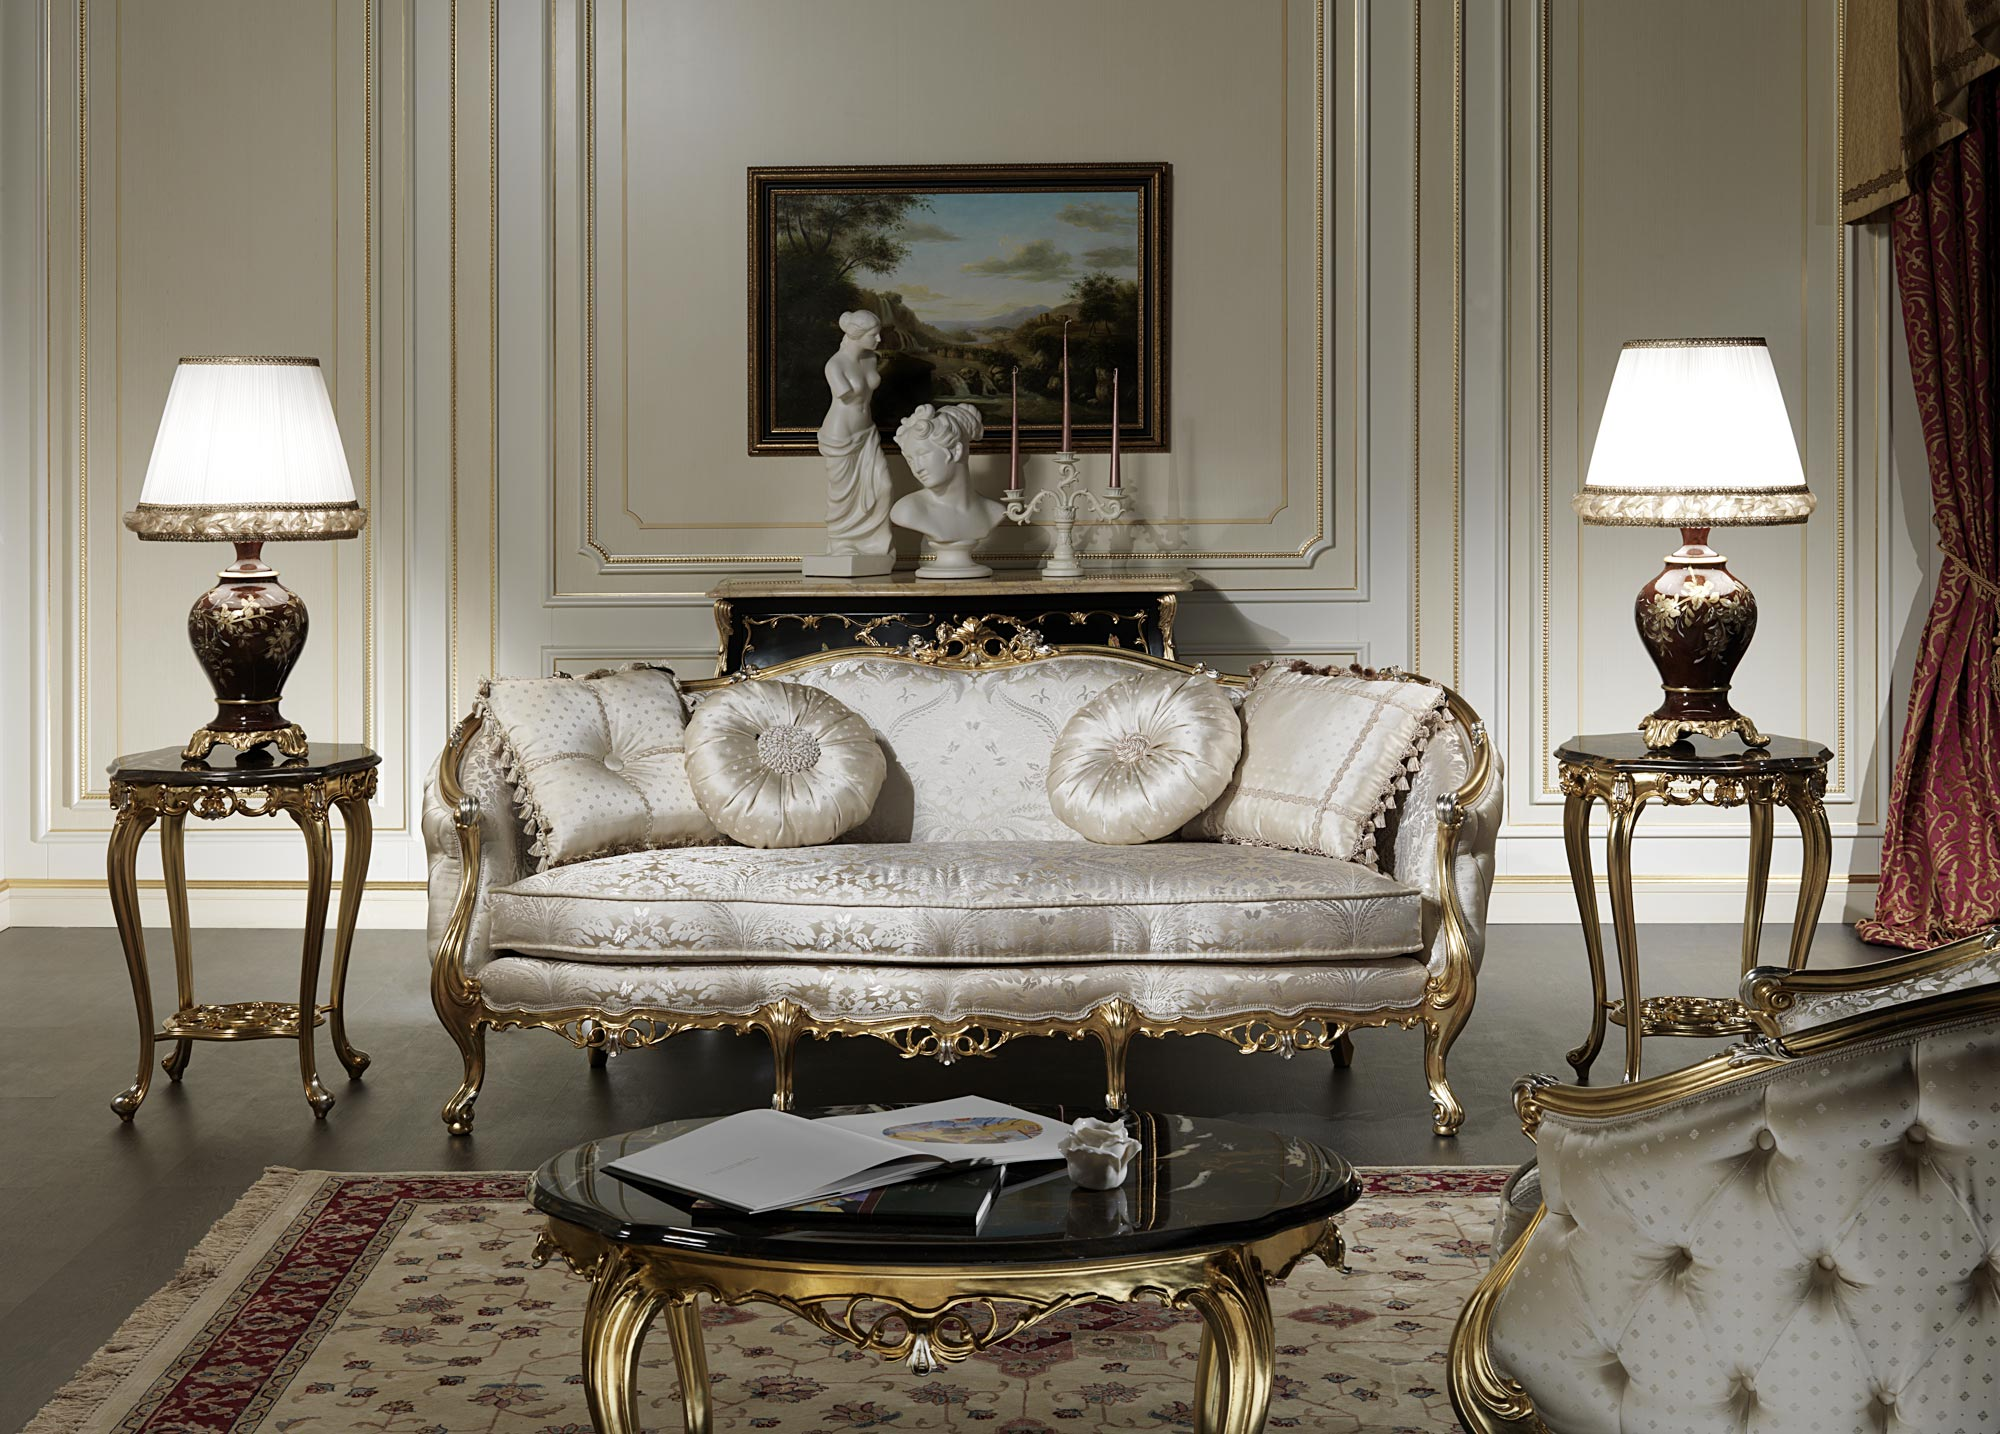 italian classic furniture living room beach cottage decorating ideas rooms sofa of the venezia collection vimercati